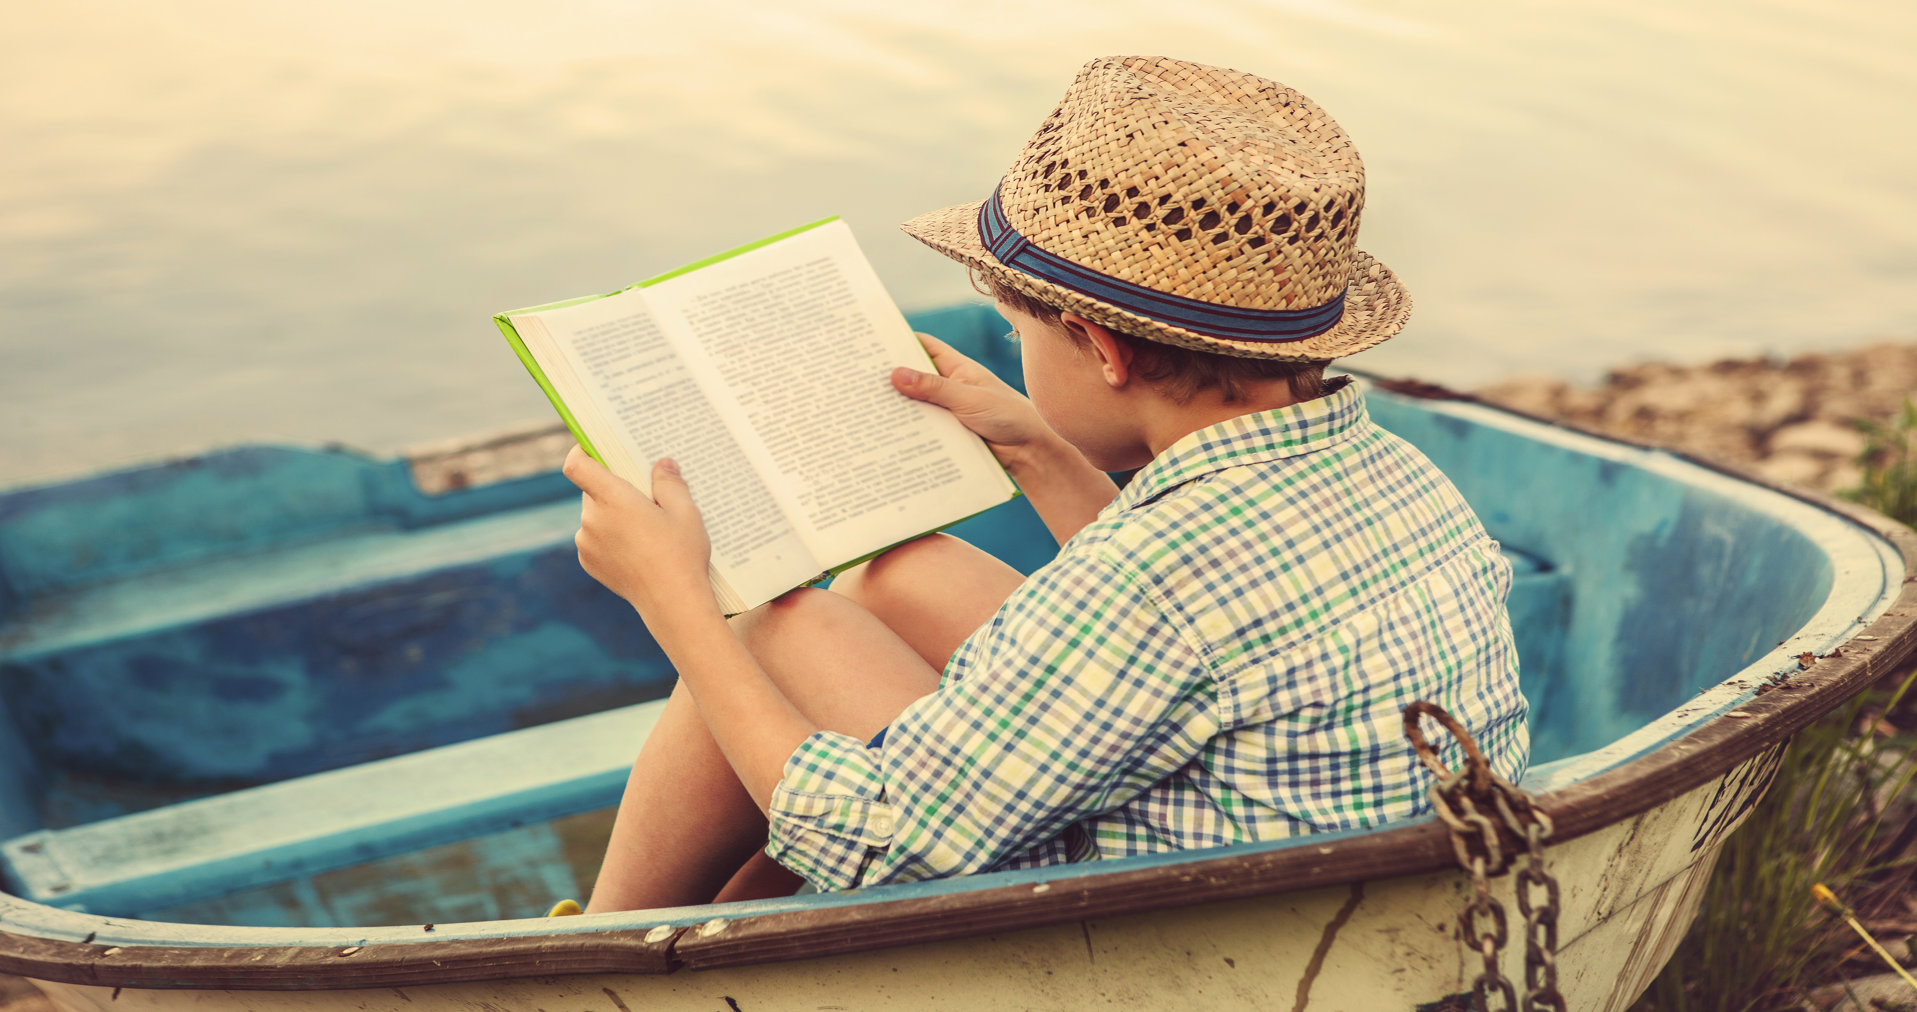 Young_boy_reading_in_boat